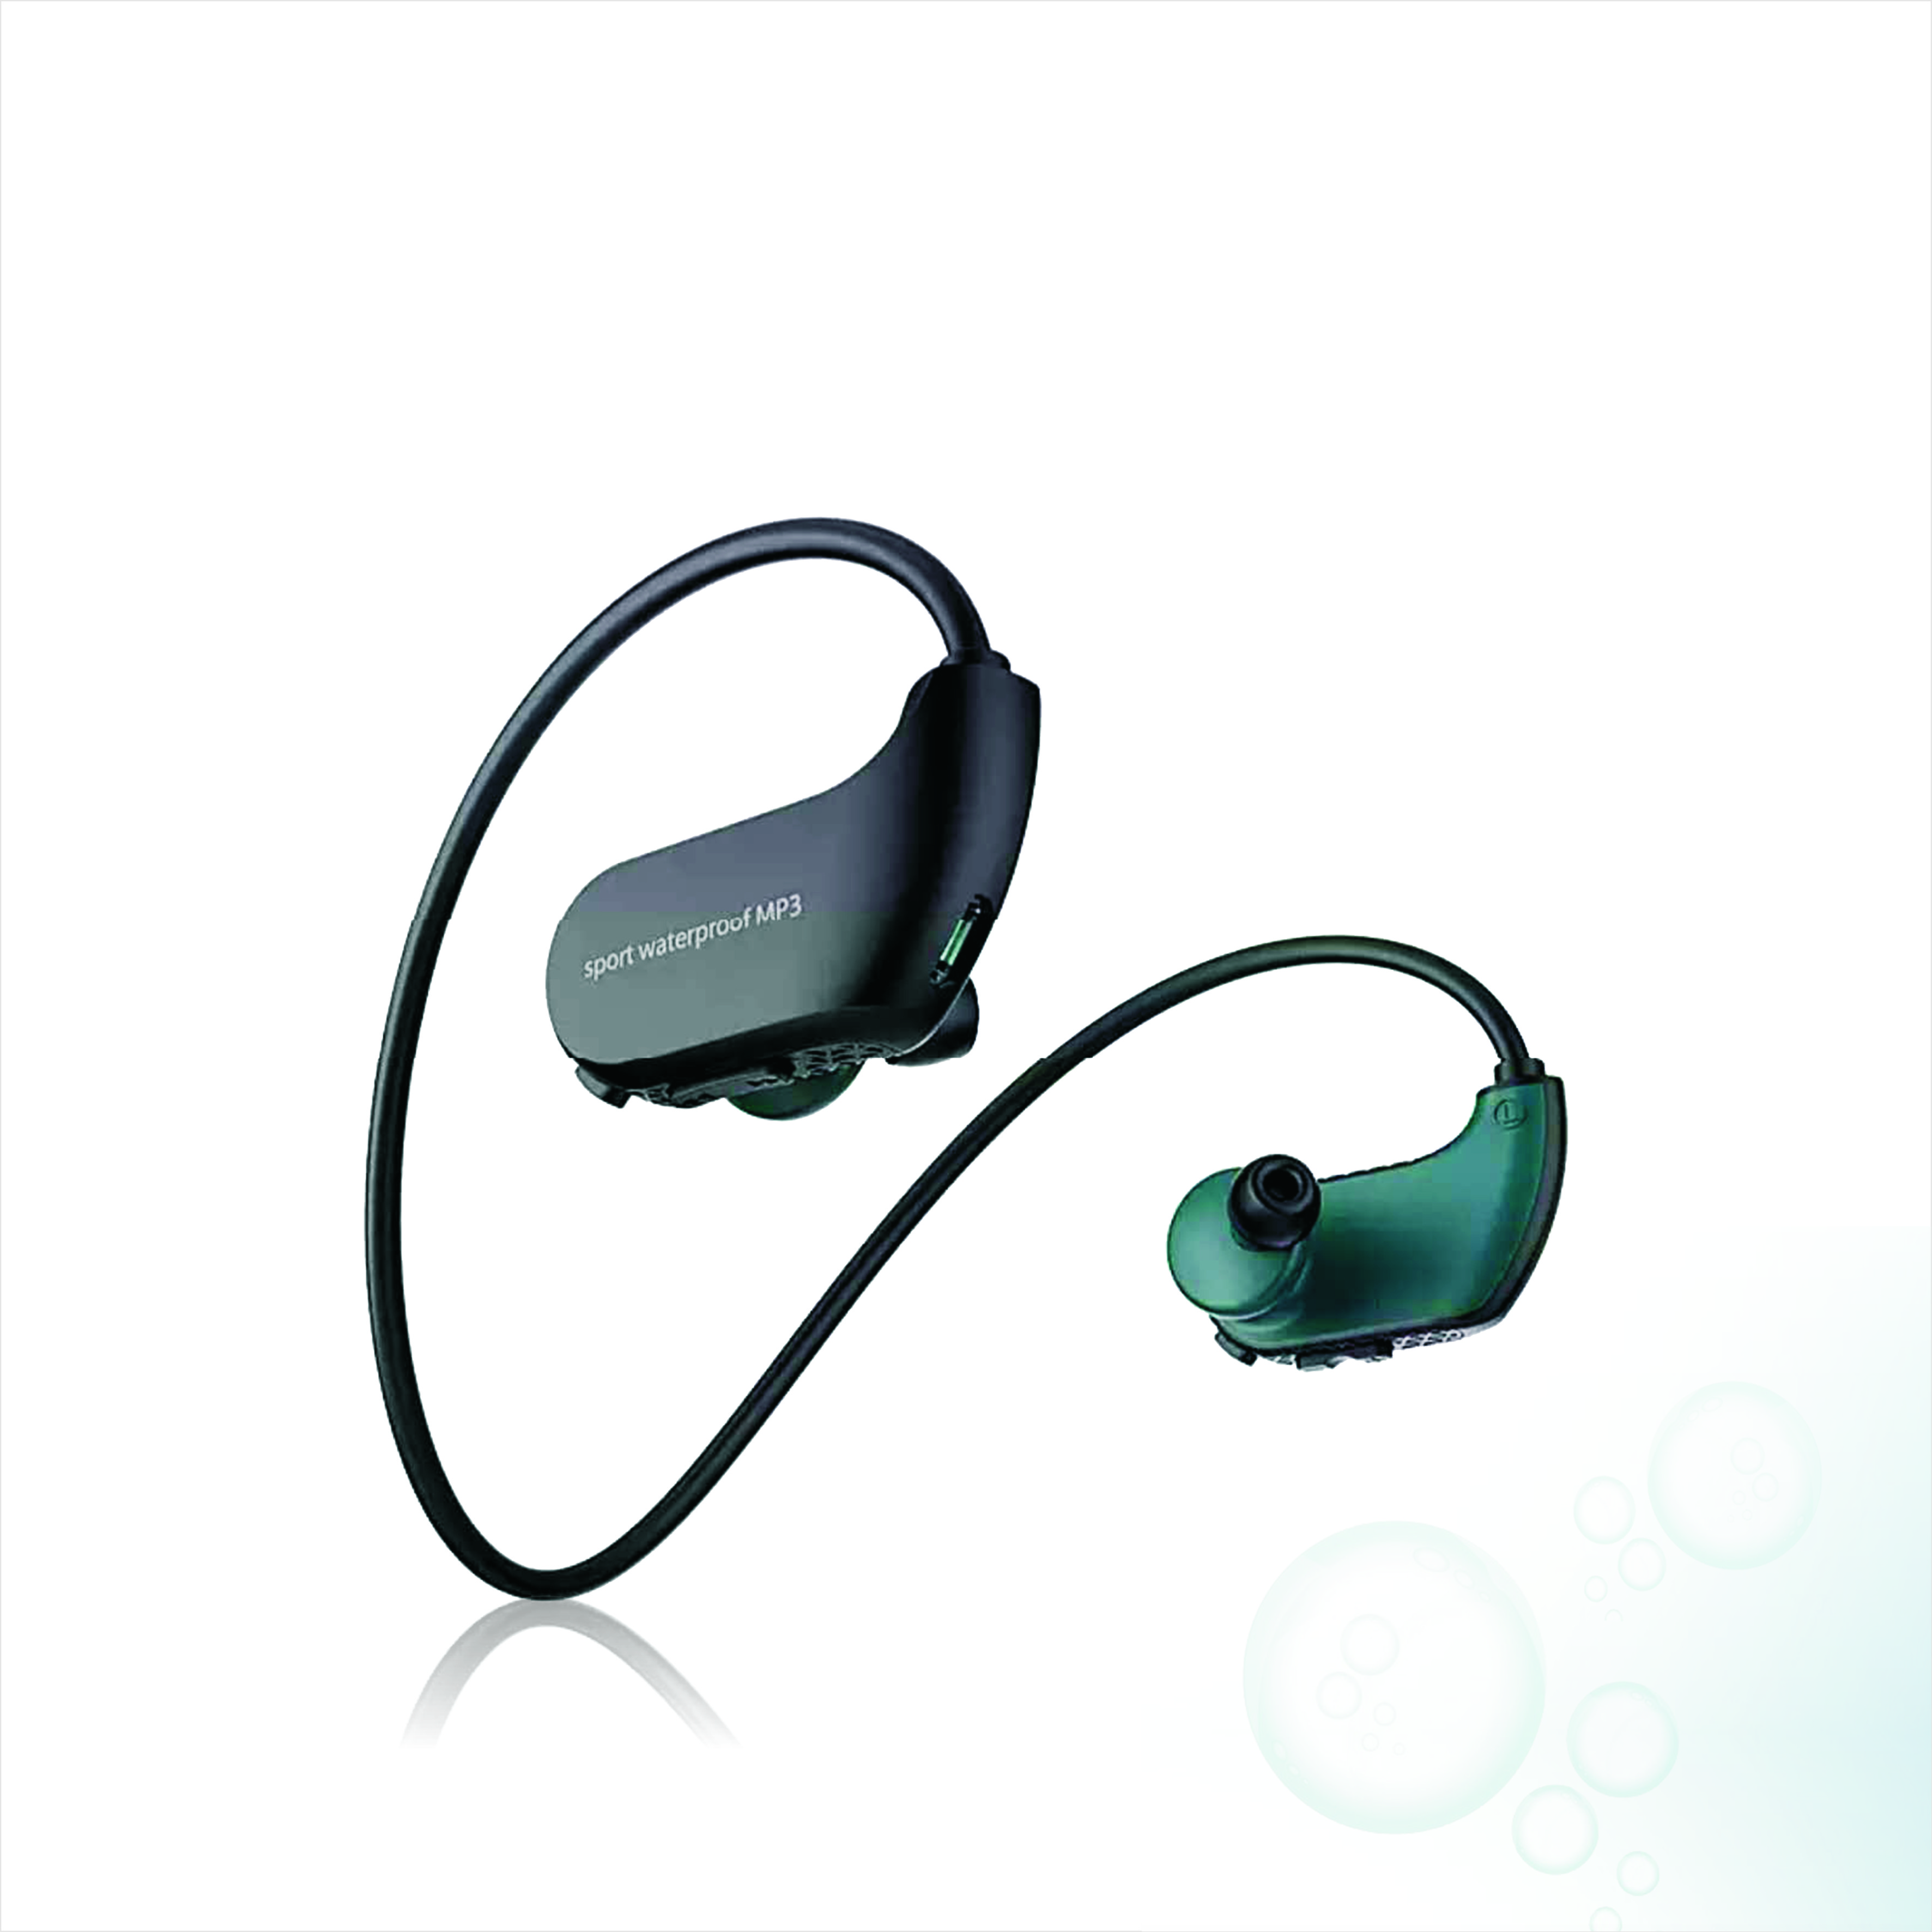 Swimming mp3 diving waterproof sports MP3 <strong>player</strong> in Ear build in 100mAh Battery IPX-8